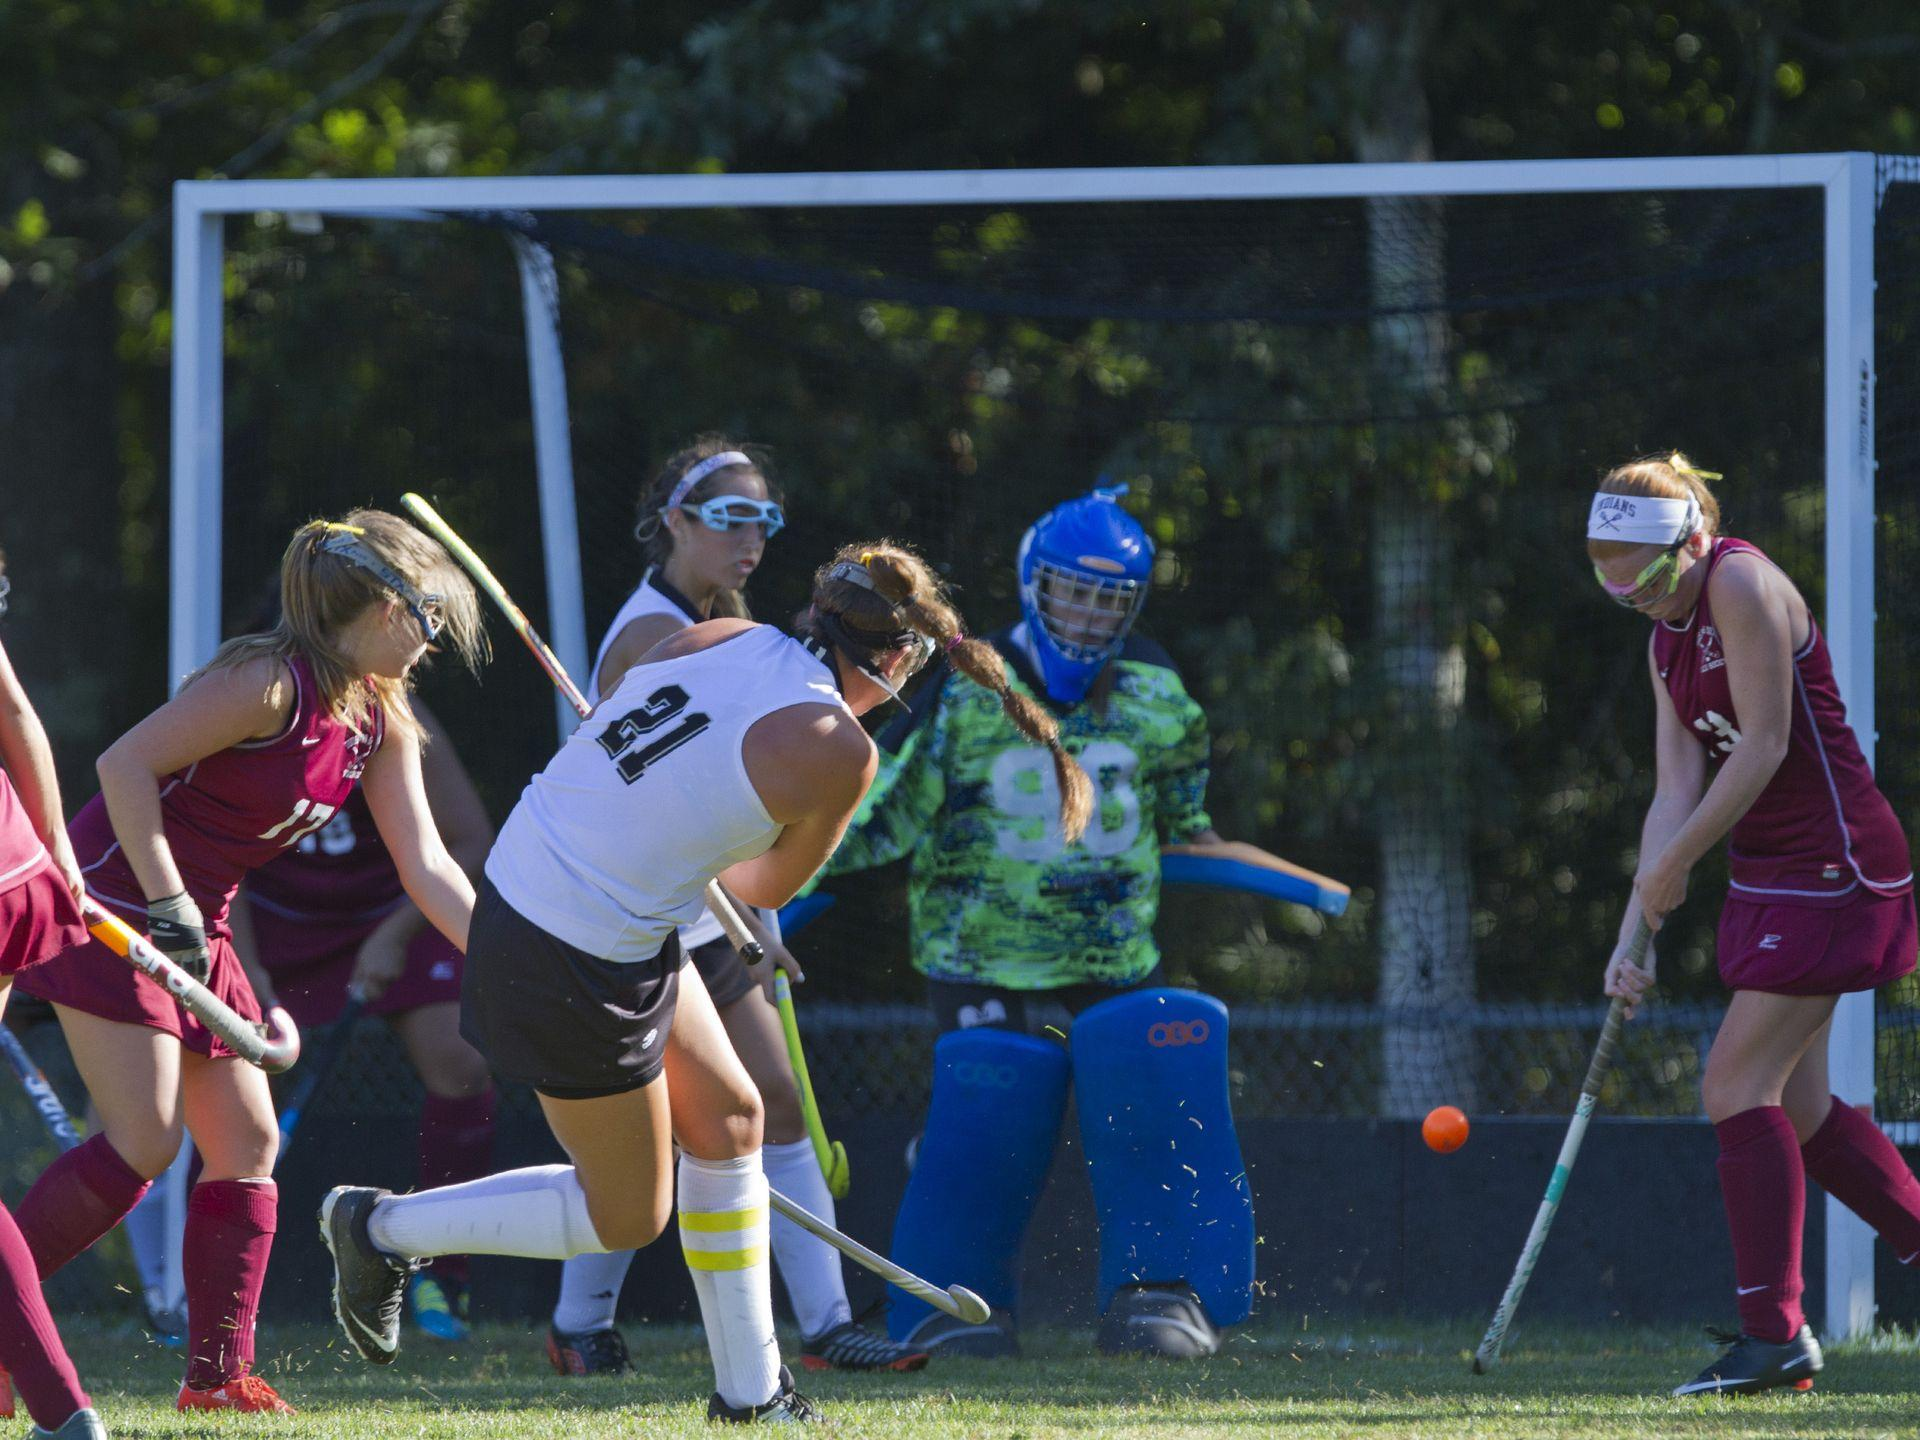 Toms River South Field Hockey vs Toms River South in Stafford Township NJ on September 23, 2015